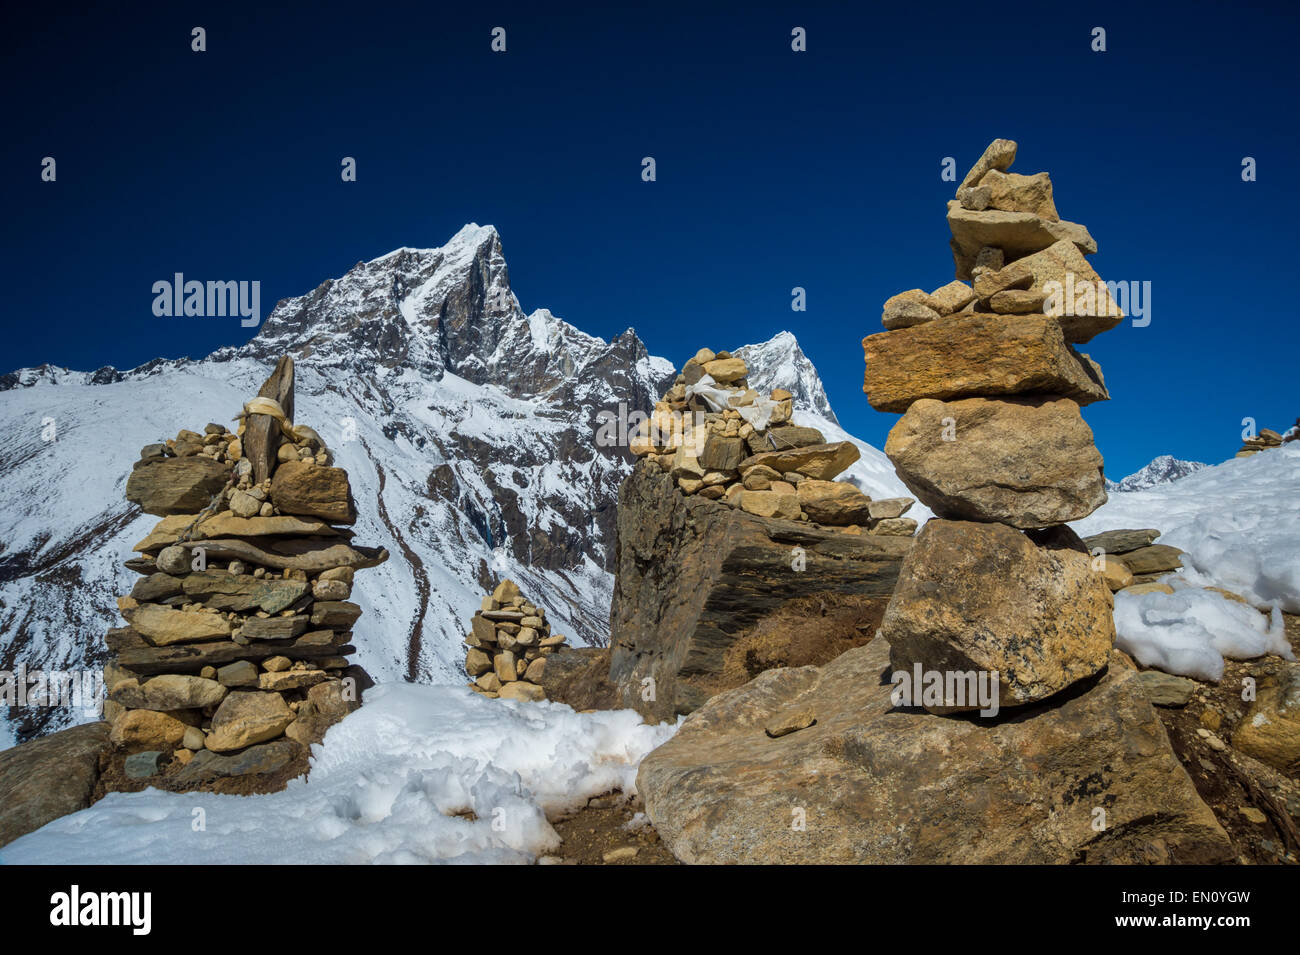 Himalayas mountain landscape with 4 stone towers - Stock Image